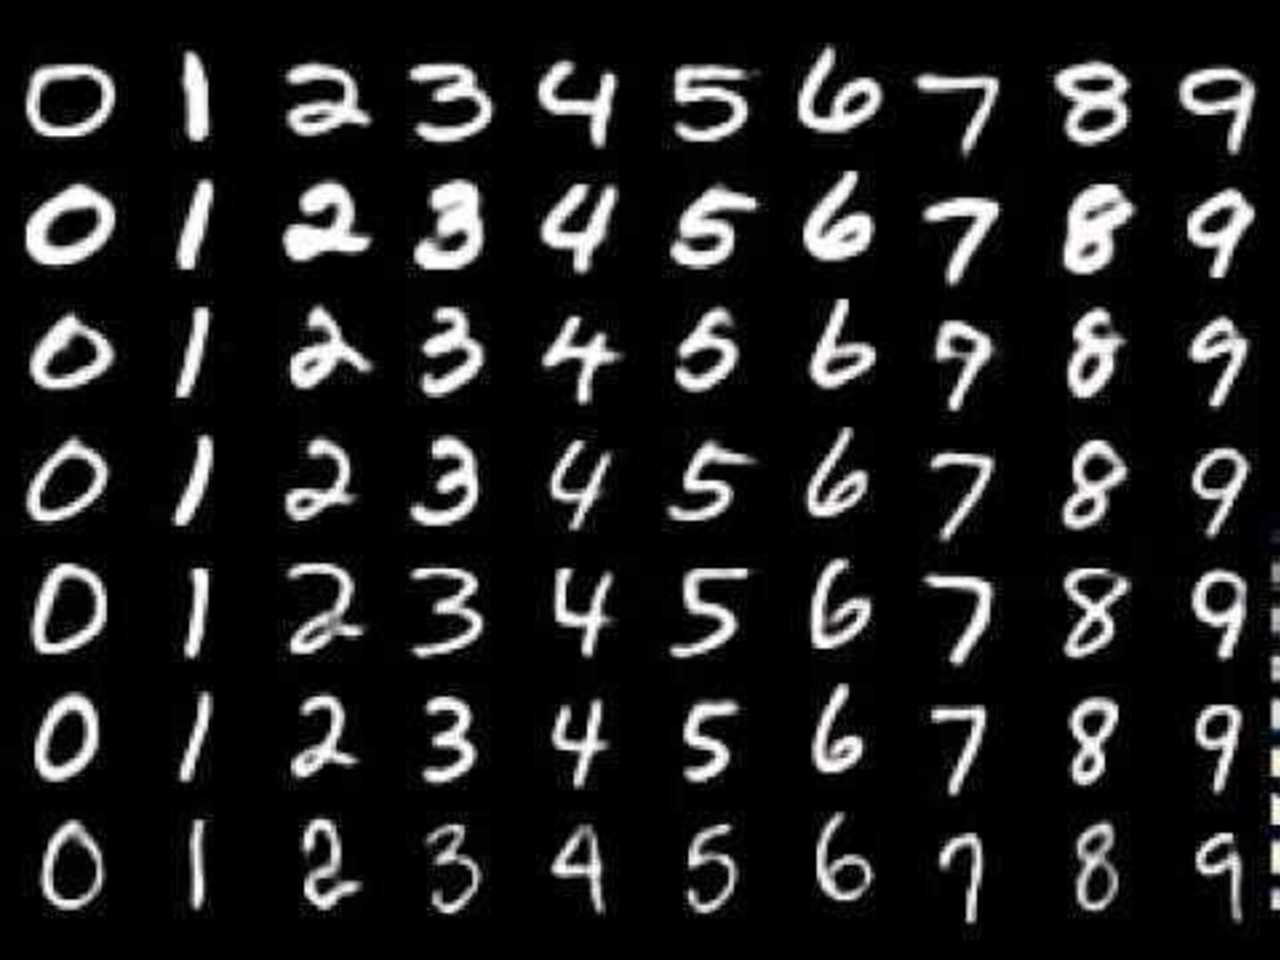 Digit classifier using MNIST dataset